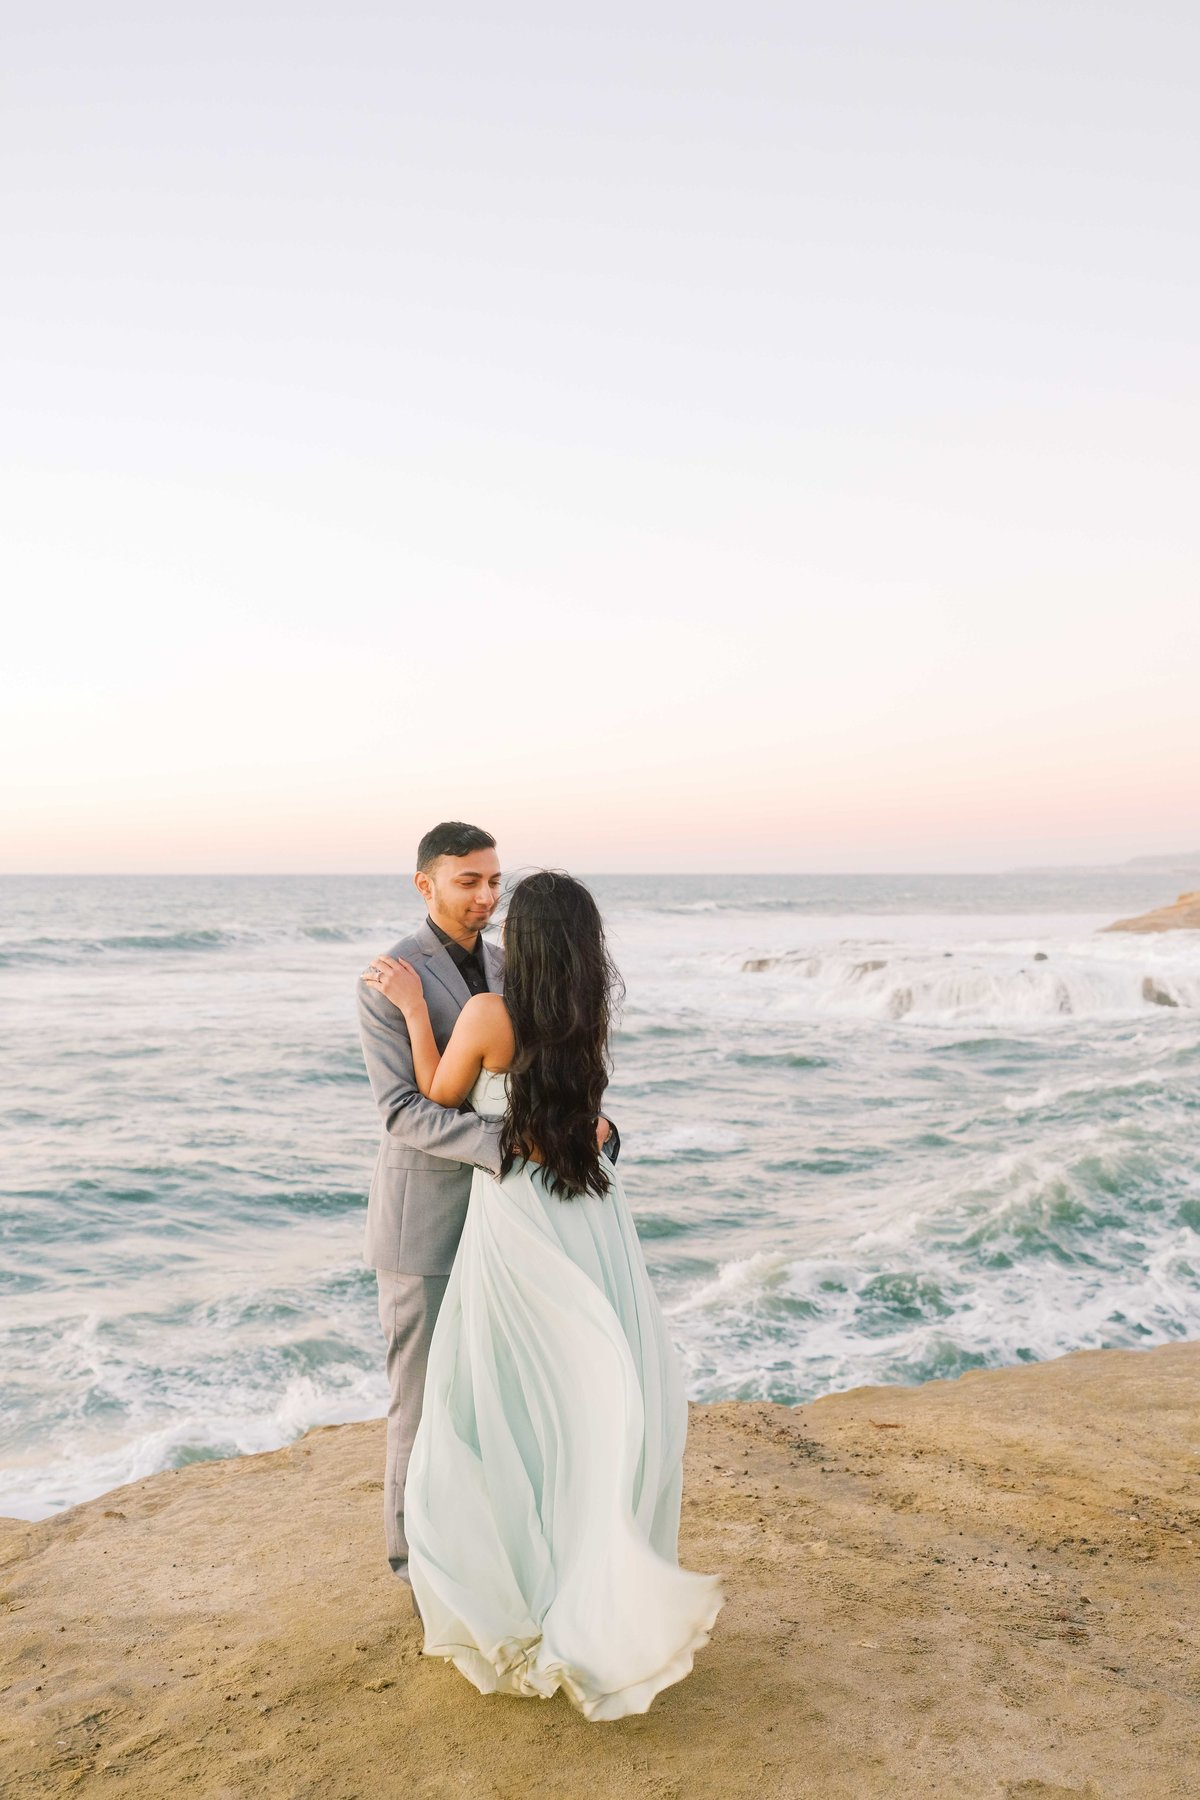 Babsie-Ly-Photography-San-Diego-Proposal-Engagement-Sunset-Cliffs-Indian-Couple-Dog-Surprise-006